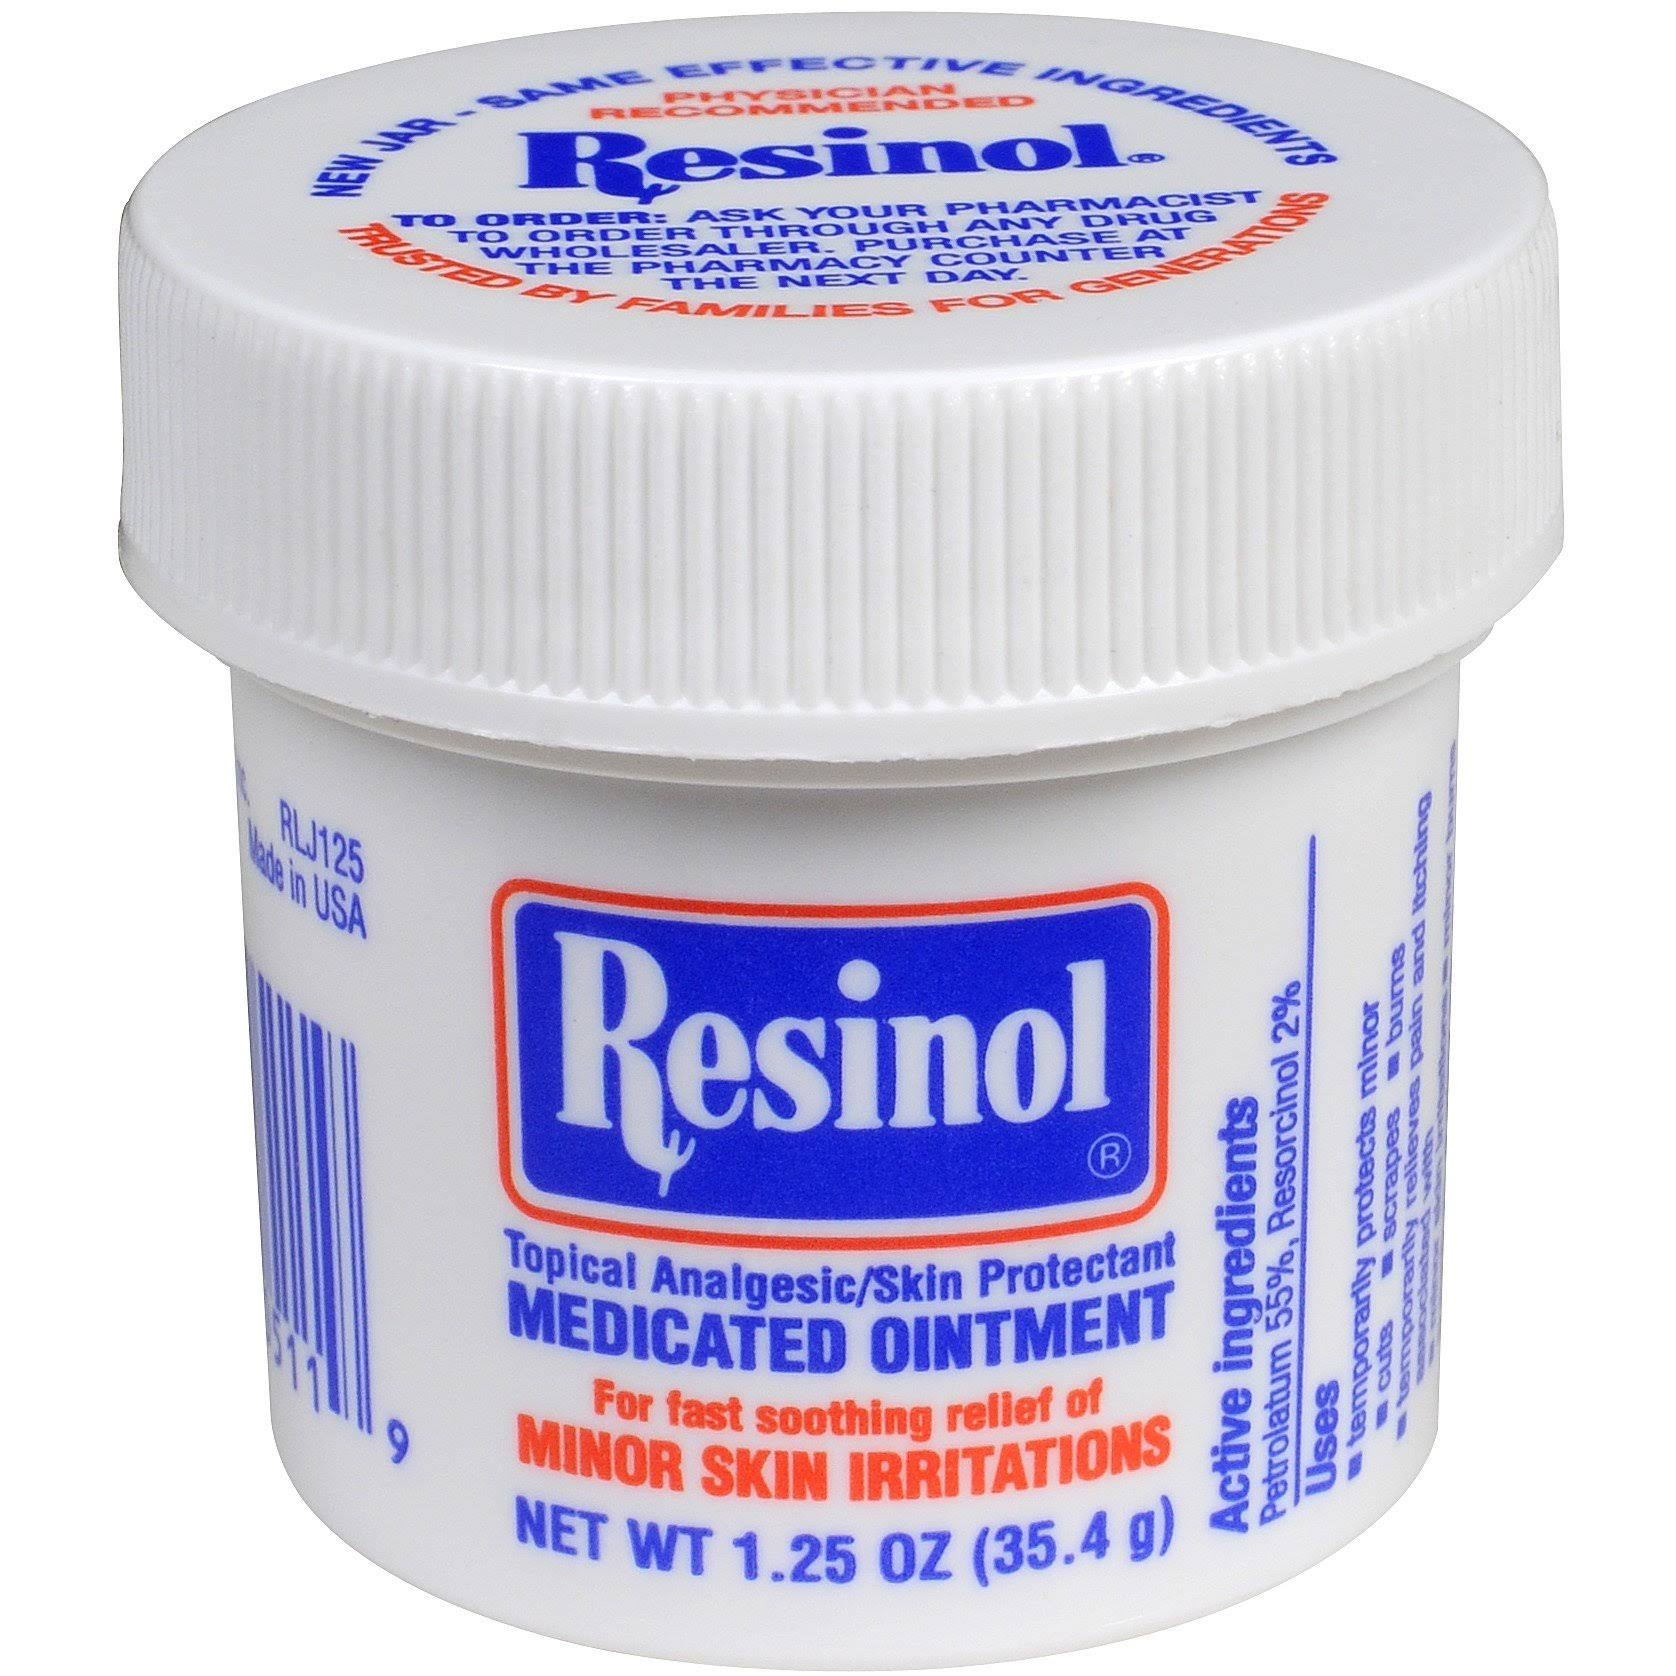 Resinol Medicated Ointment - 1.25oz